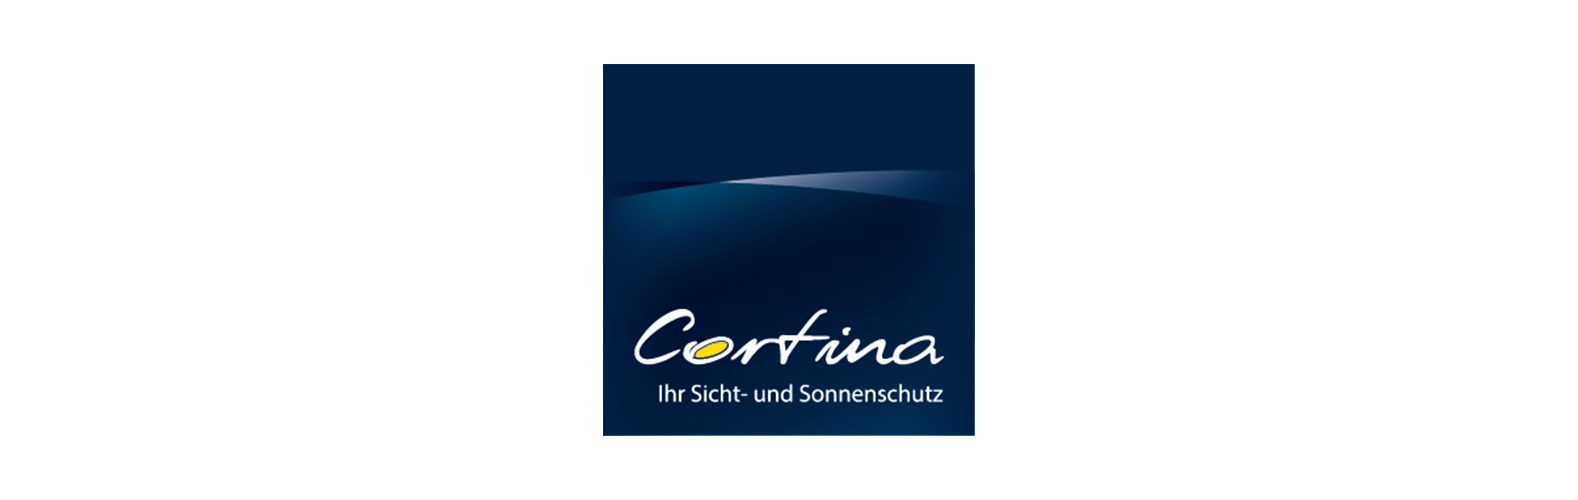 /file_data/flextemp/images/cortina-logo.png